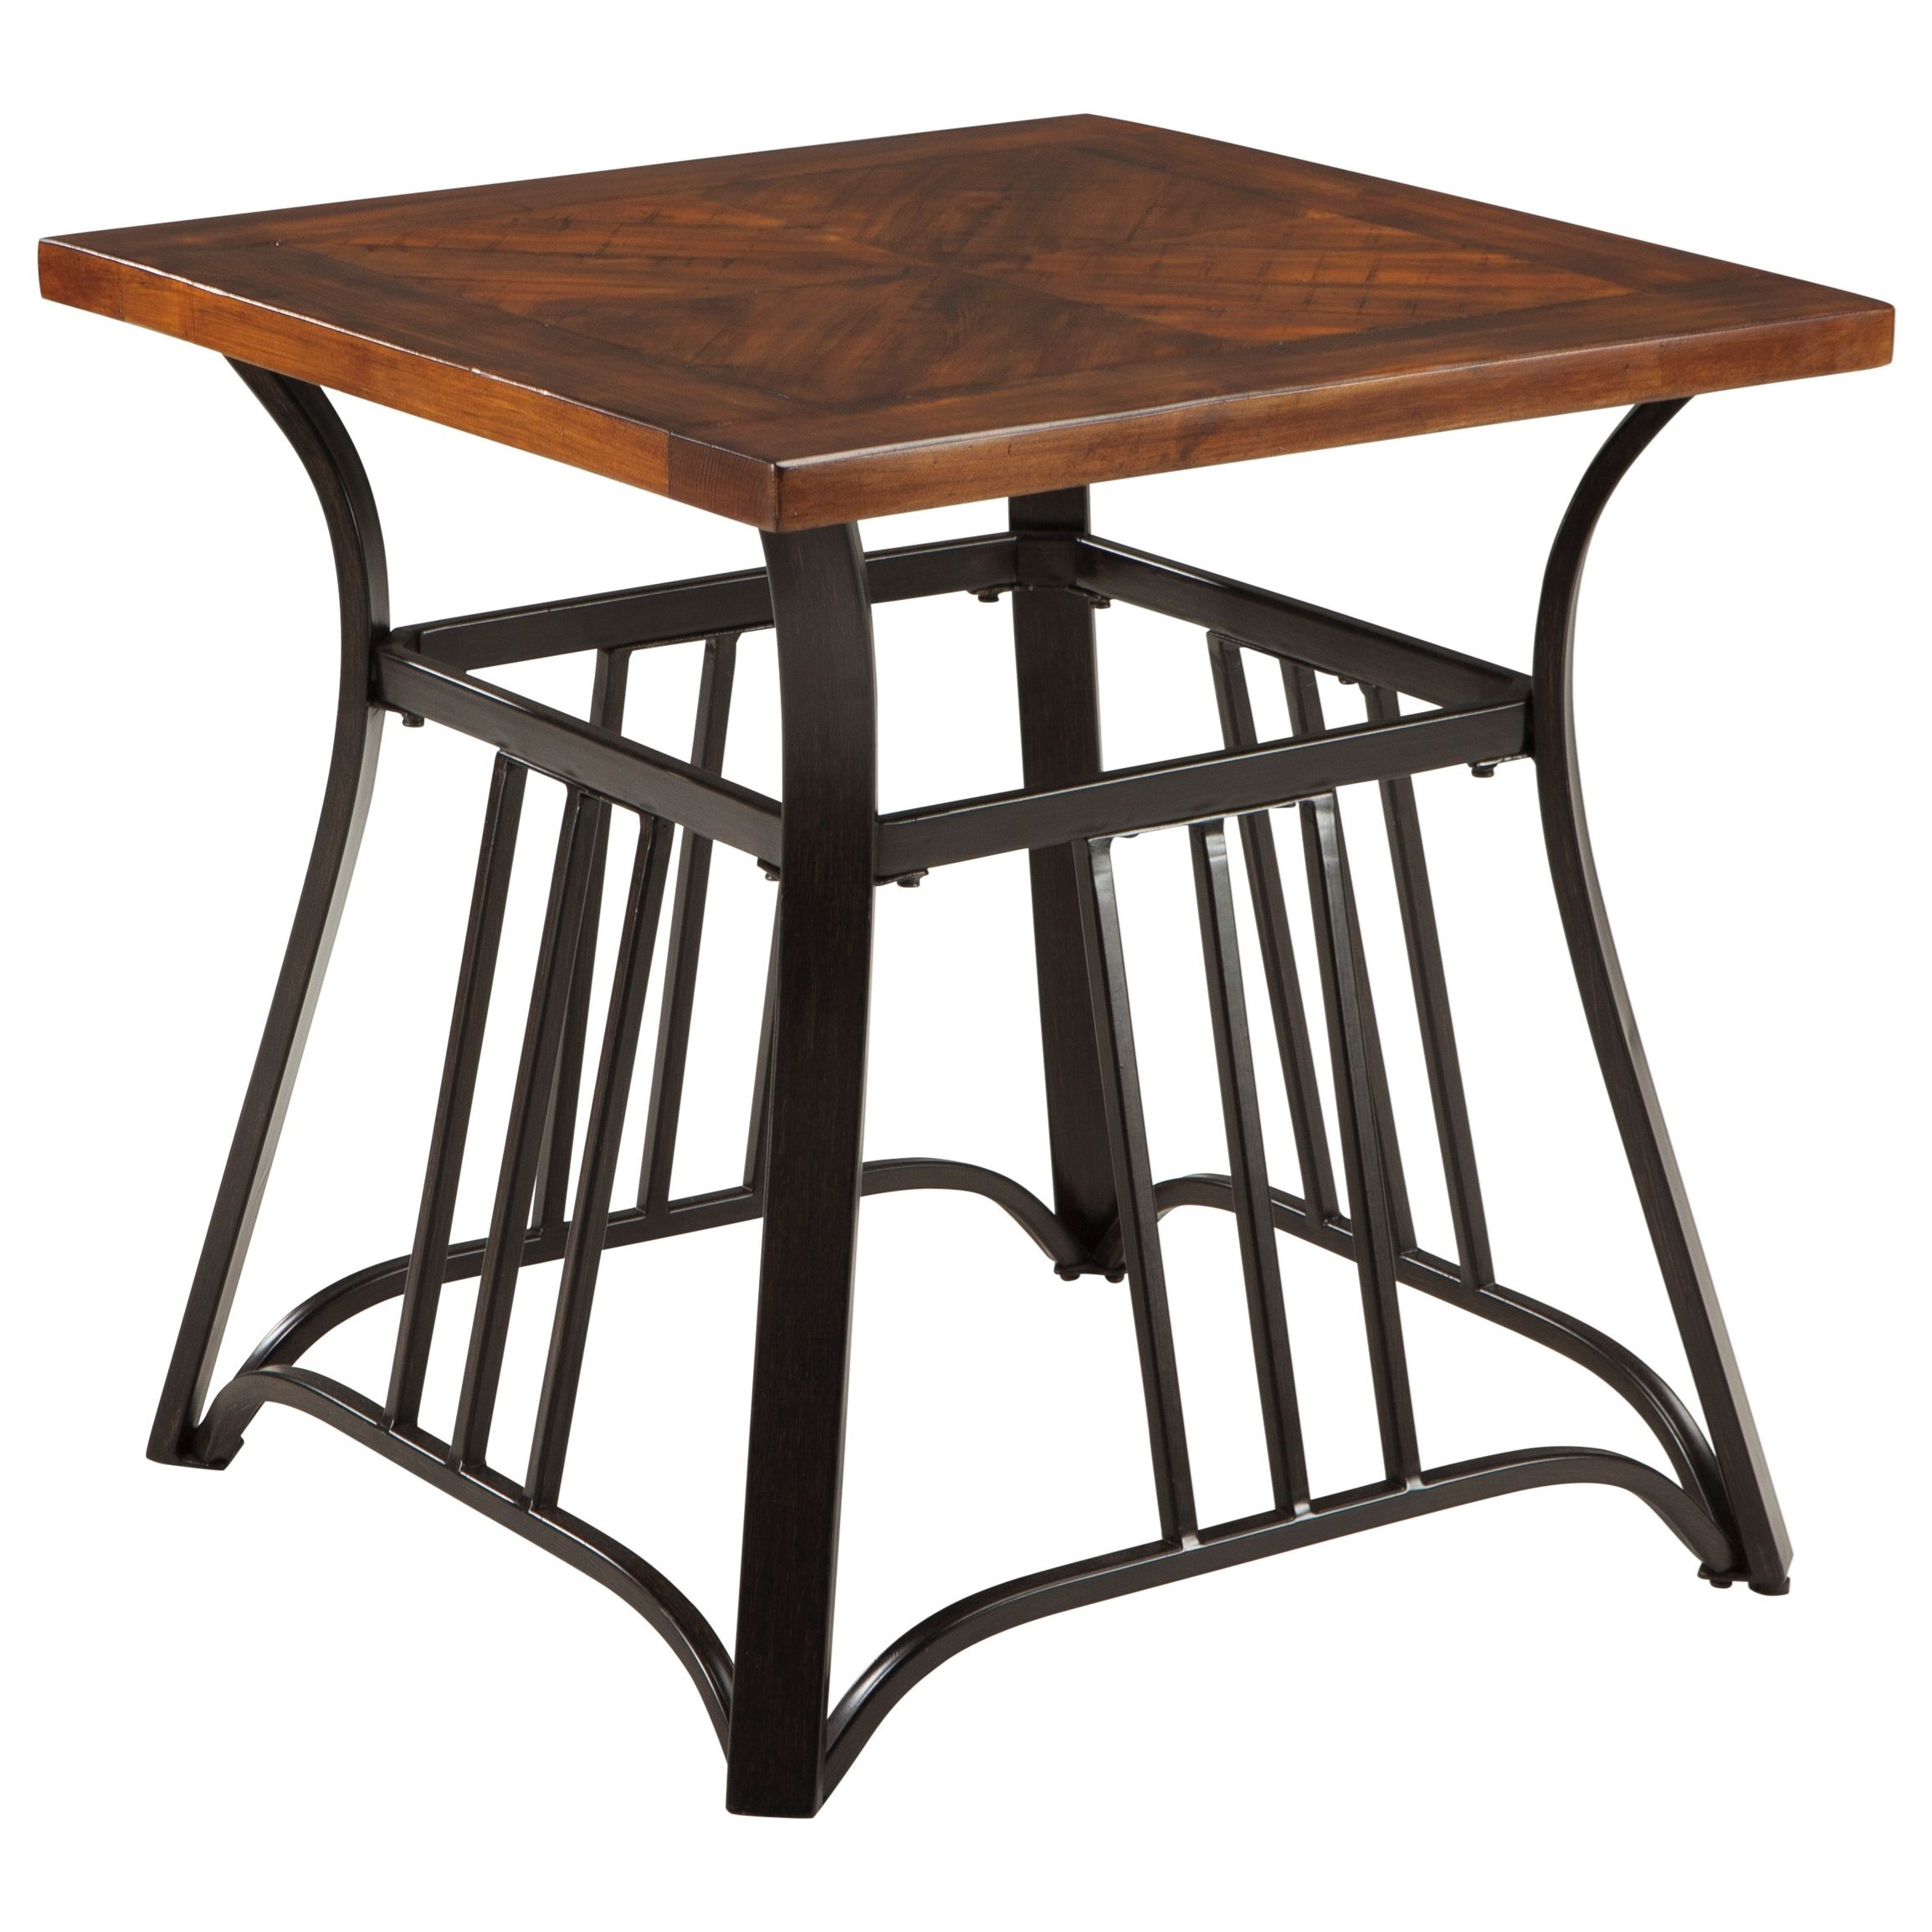 Signature Design by Ashley Zanilly Square End Table - Item Number: T607-2